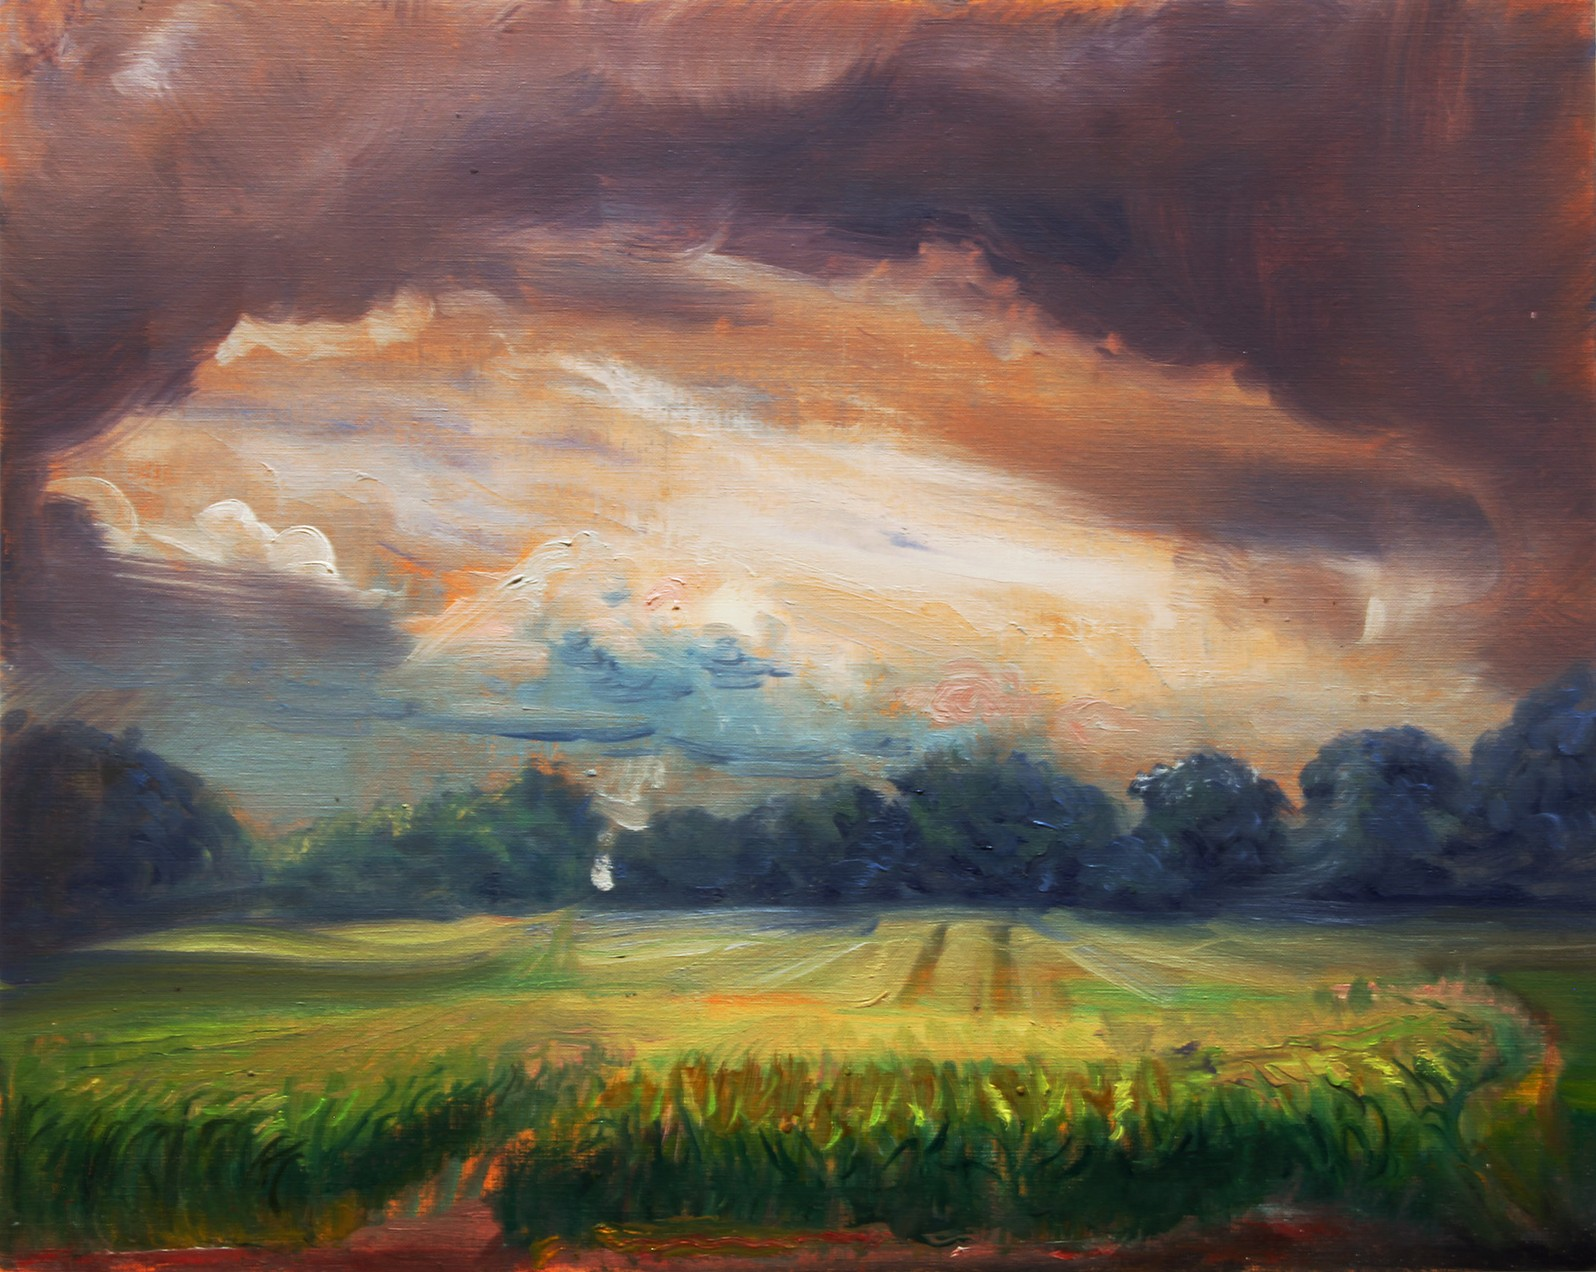 Miller Lopez Storm over a Cornfield